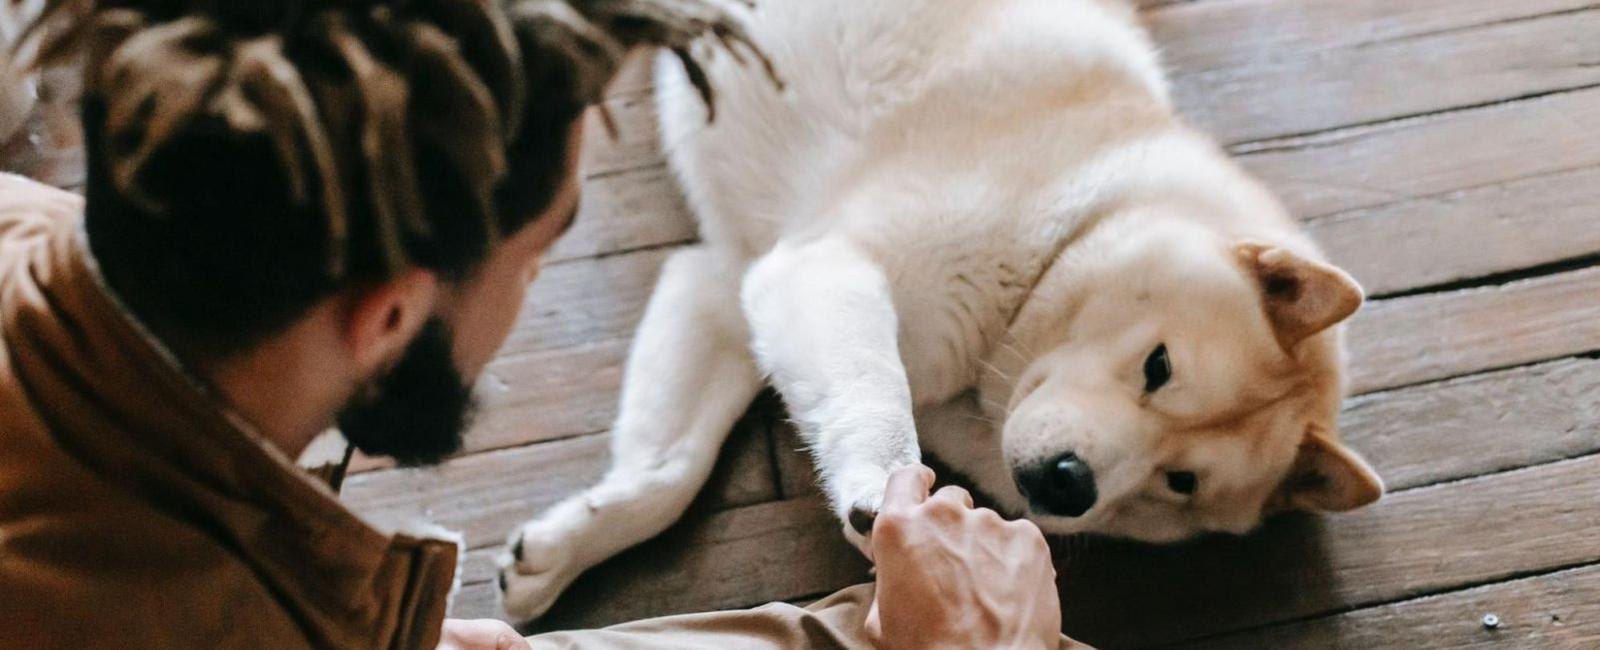 Why Do Dogs Push You Away When You Pet Them?